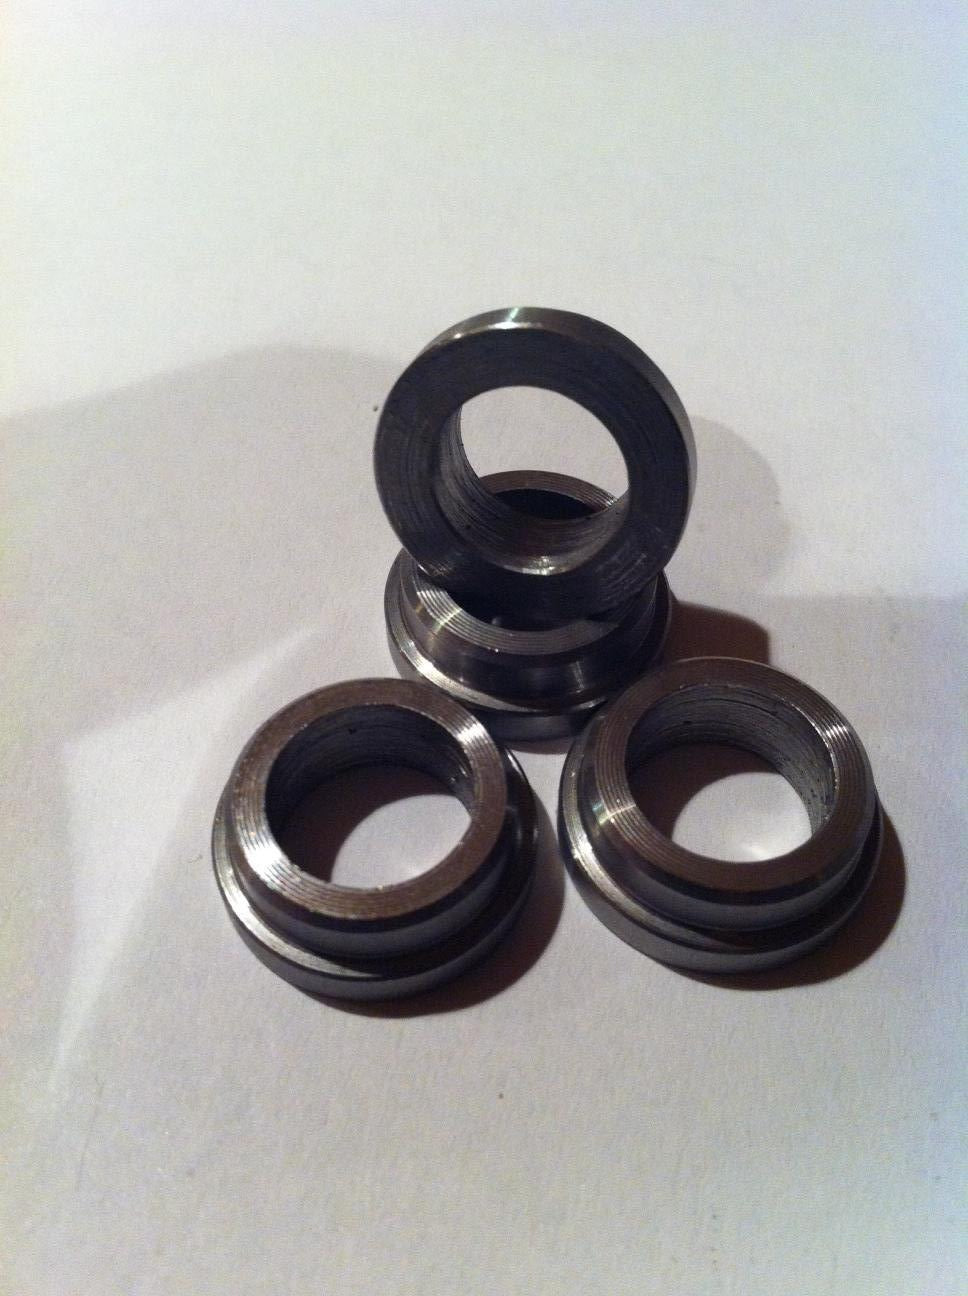 T-Bushing Spacer For Lower Pin